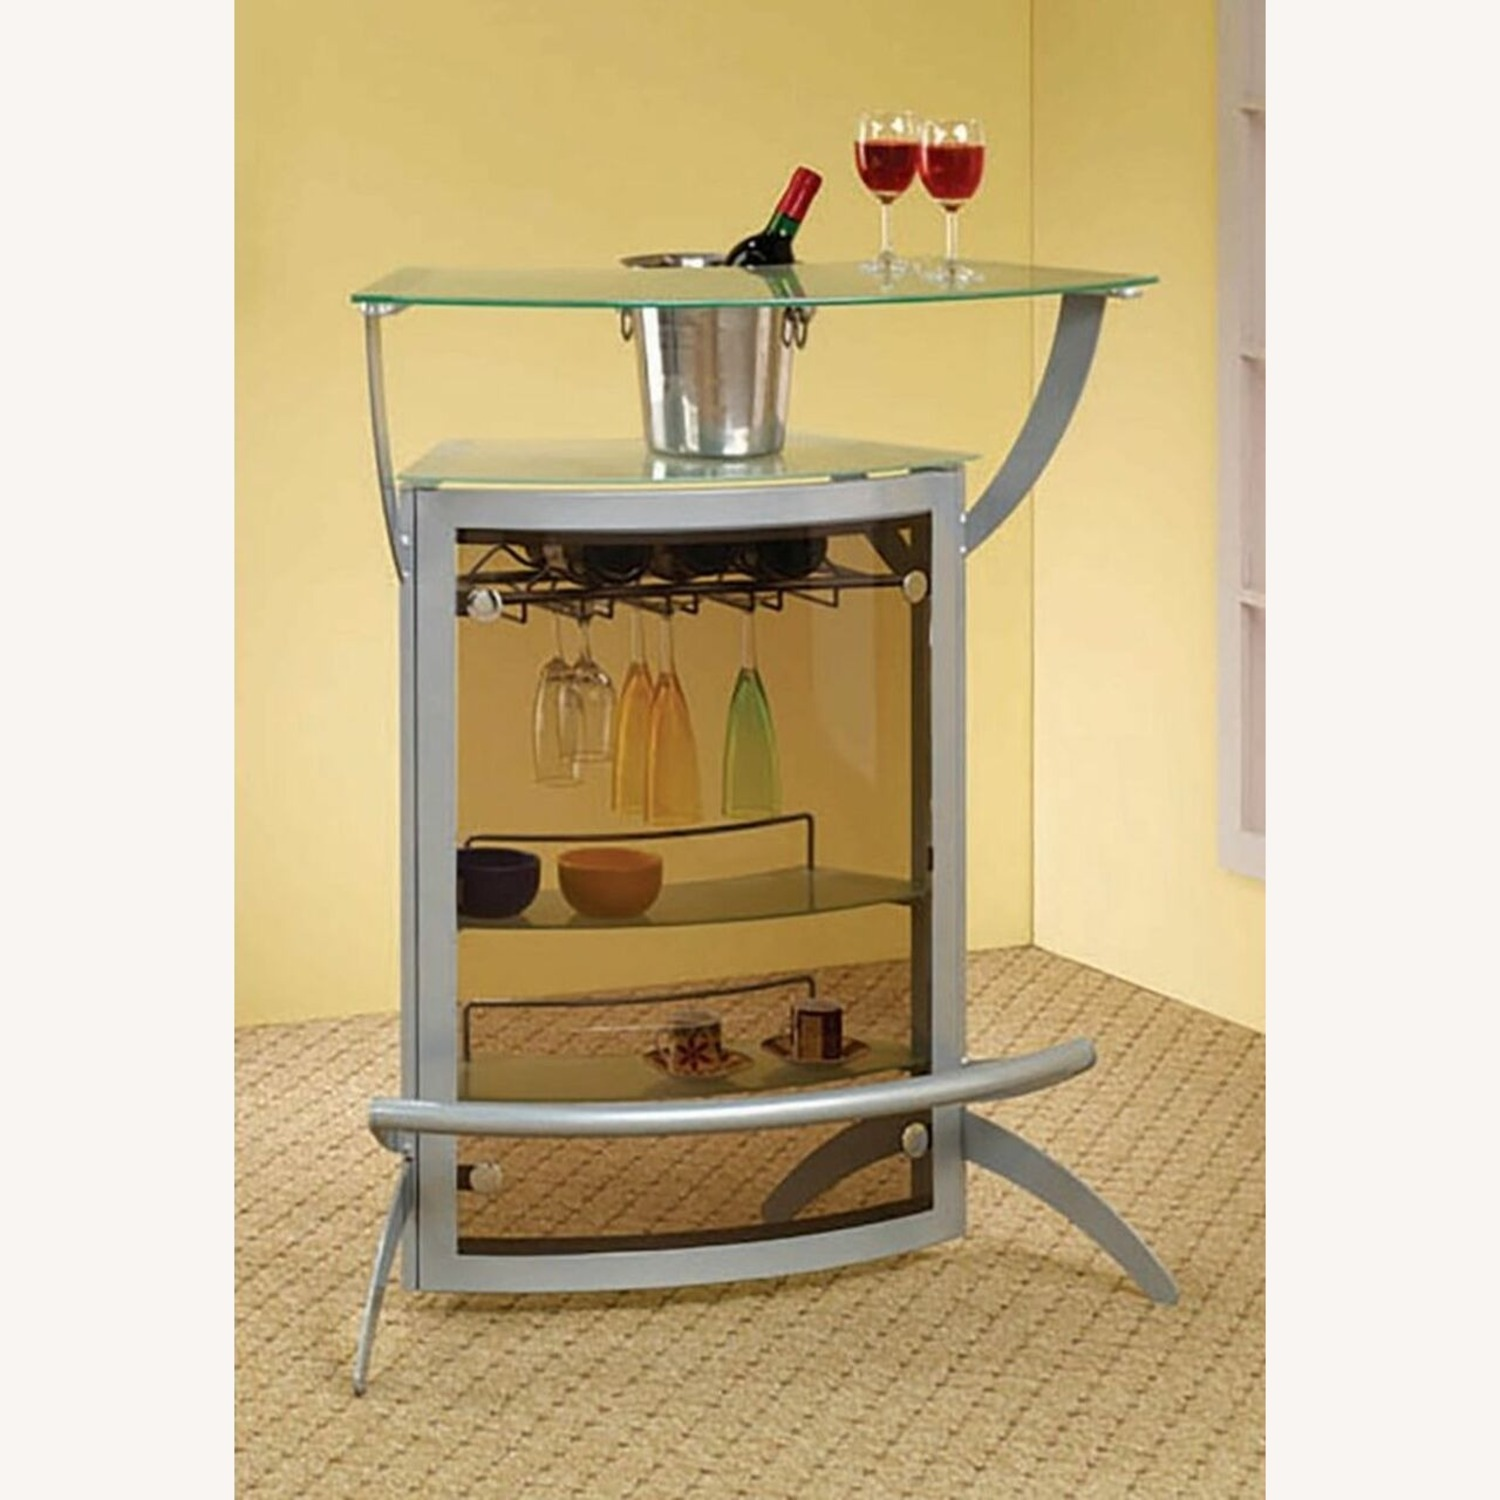 3-Piece Bar Unit Set In Smoked Acrylic & Silver - image-1